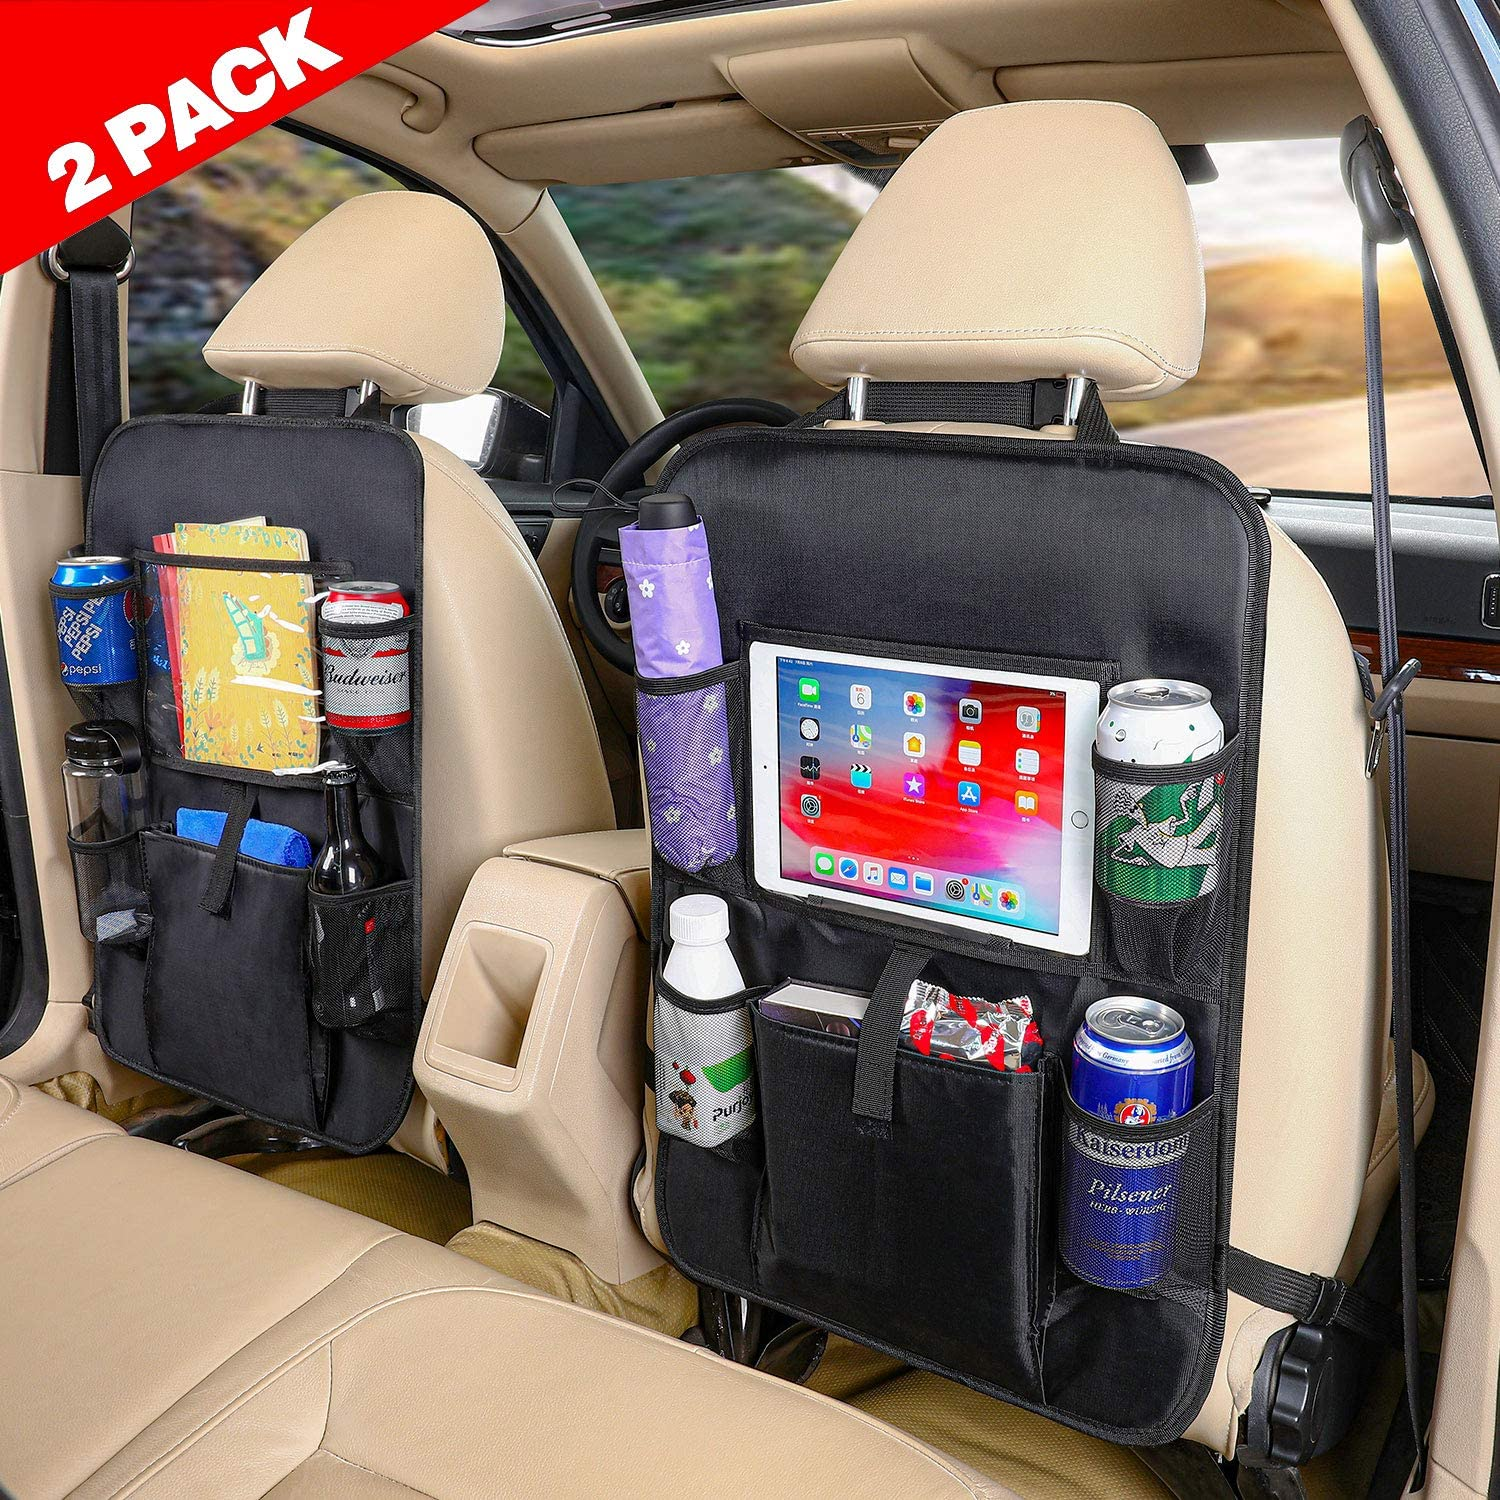 Pack of 2 Car Back Seat Protector Car Back Seat Organizer for Kids Kick Mat Protector for Car Seat Large Pockets and iPad//Tablet Compartment Waterproof Car Seat Protector